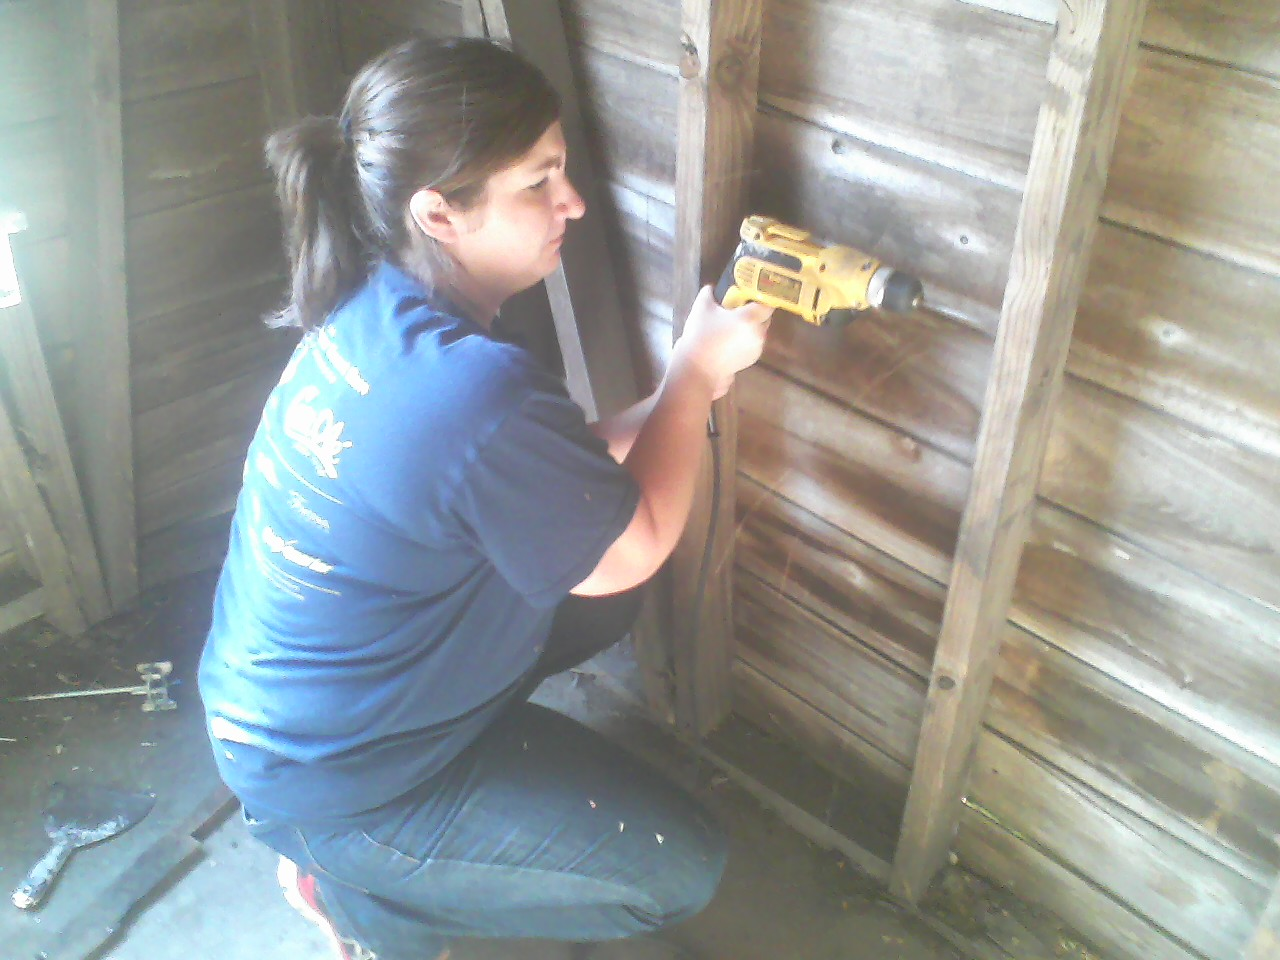 Deanna displays her skill with the drill.